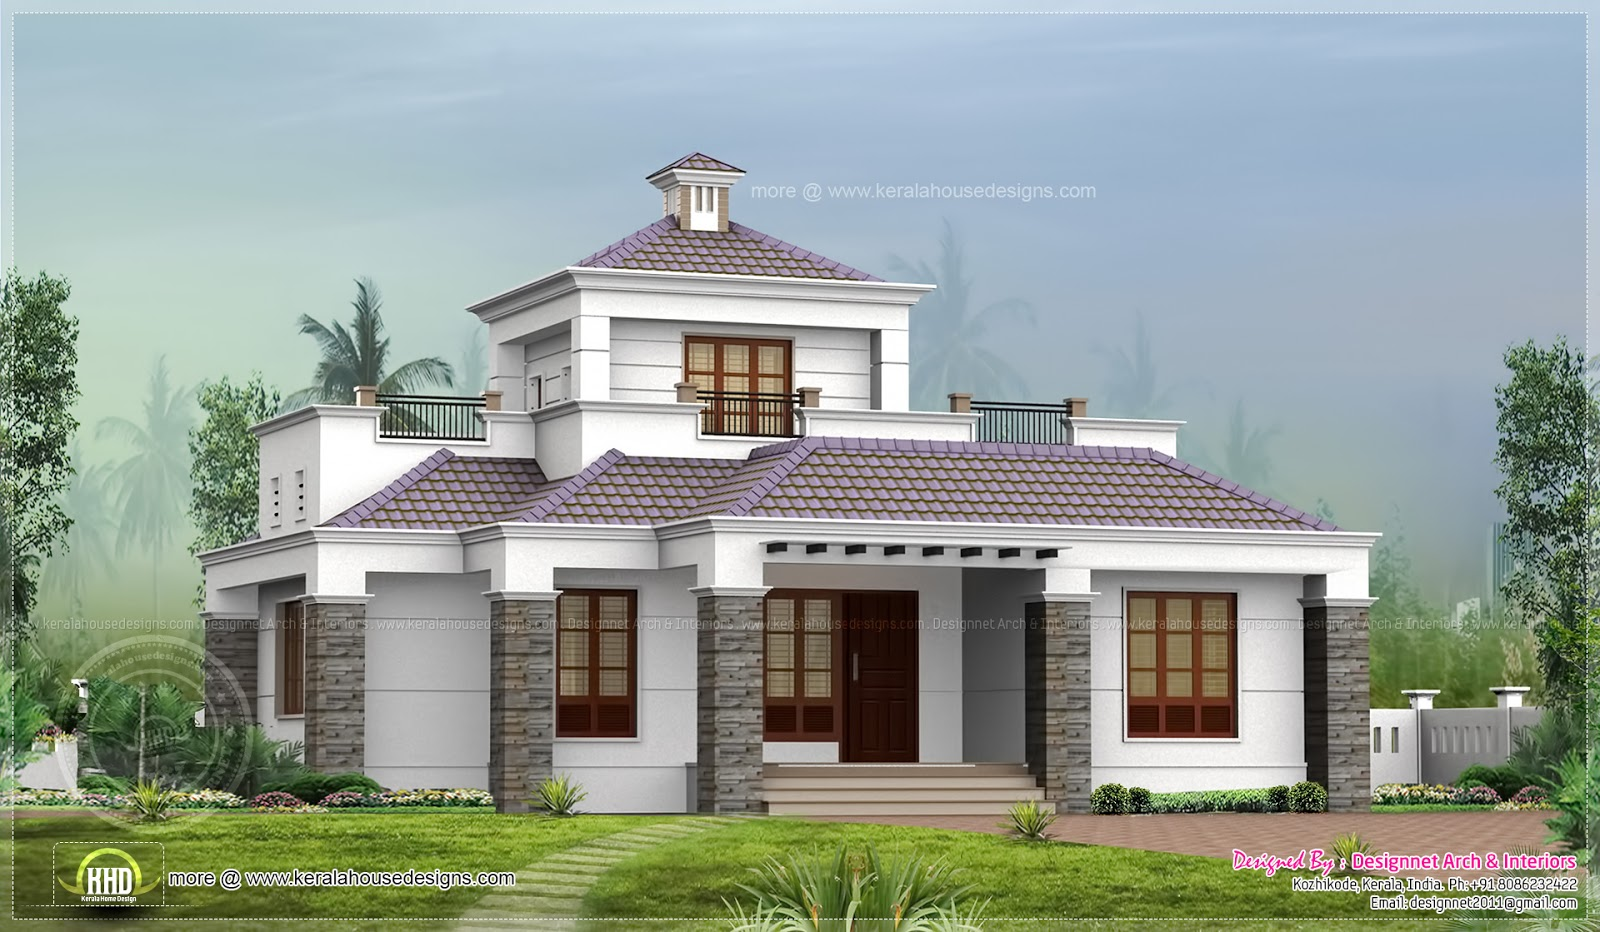 Single floor home with stair room in 1500 sq ft kerala 1500 sq ft house plan indian design